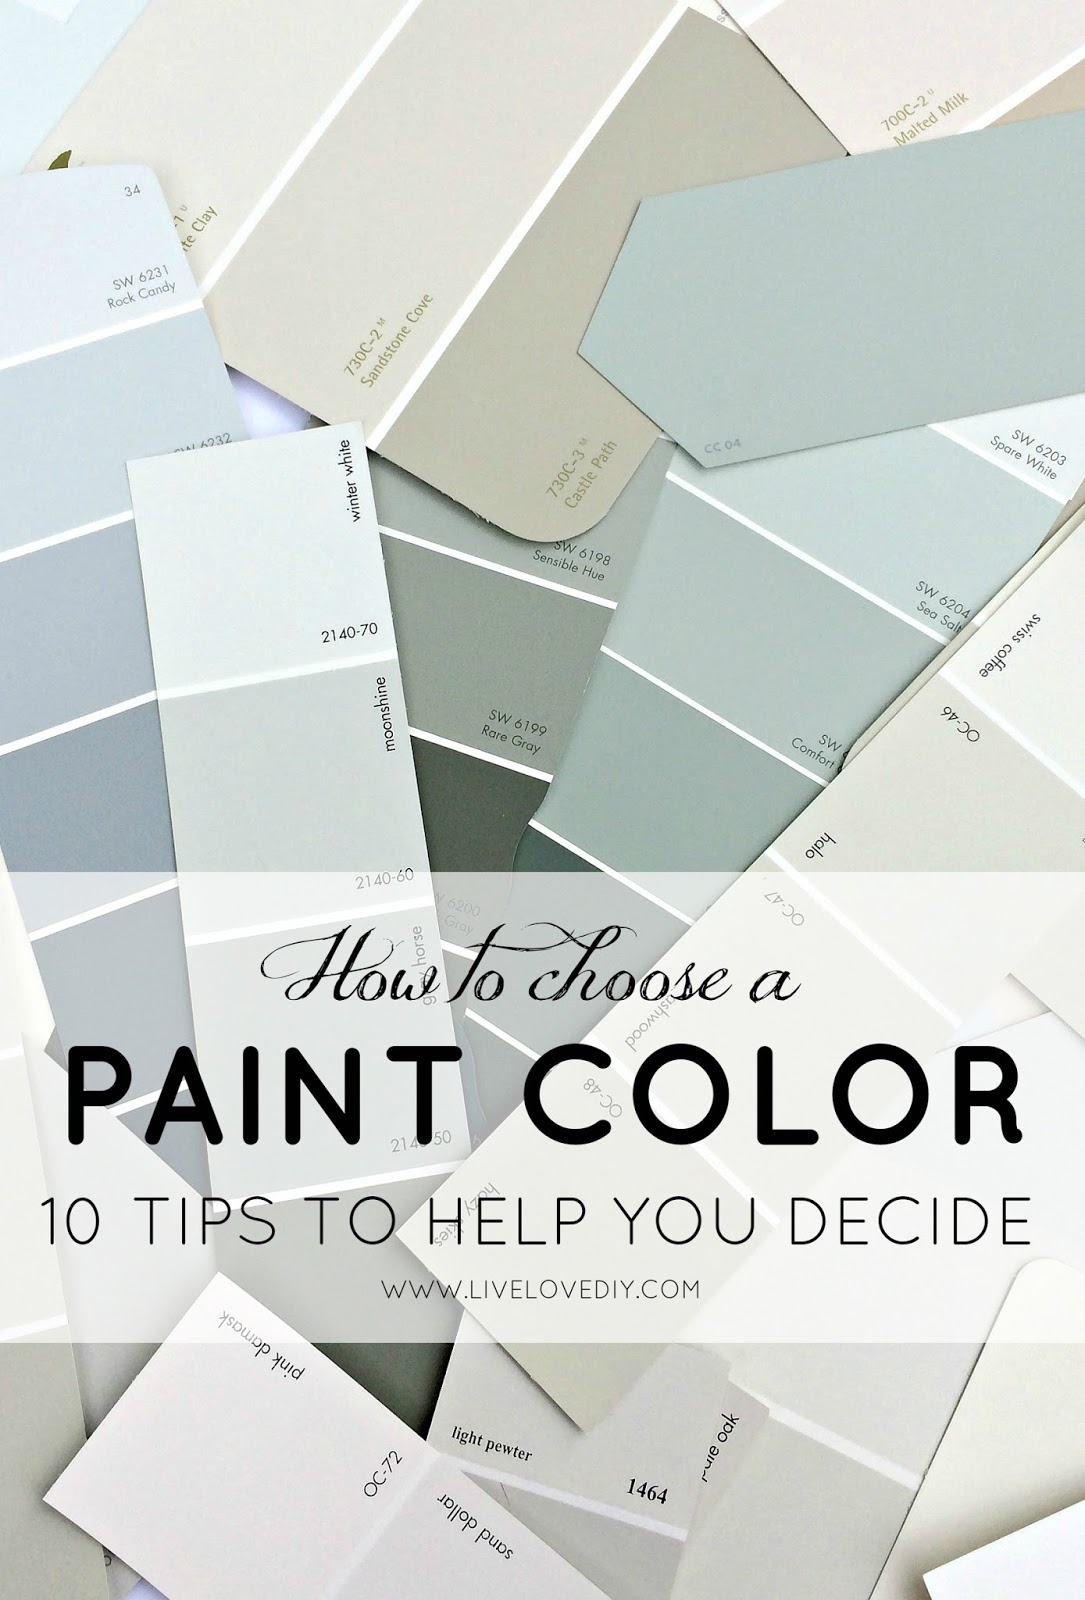 Livelovediy how to choose a paint color 10 tips to help for How to choose house paint colors